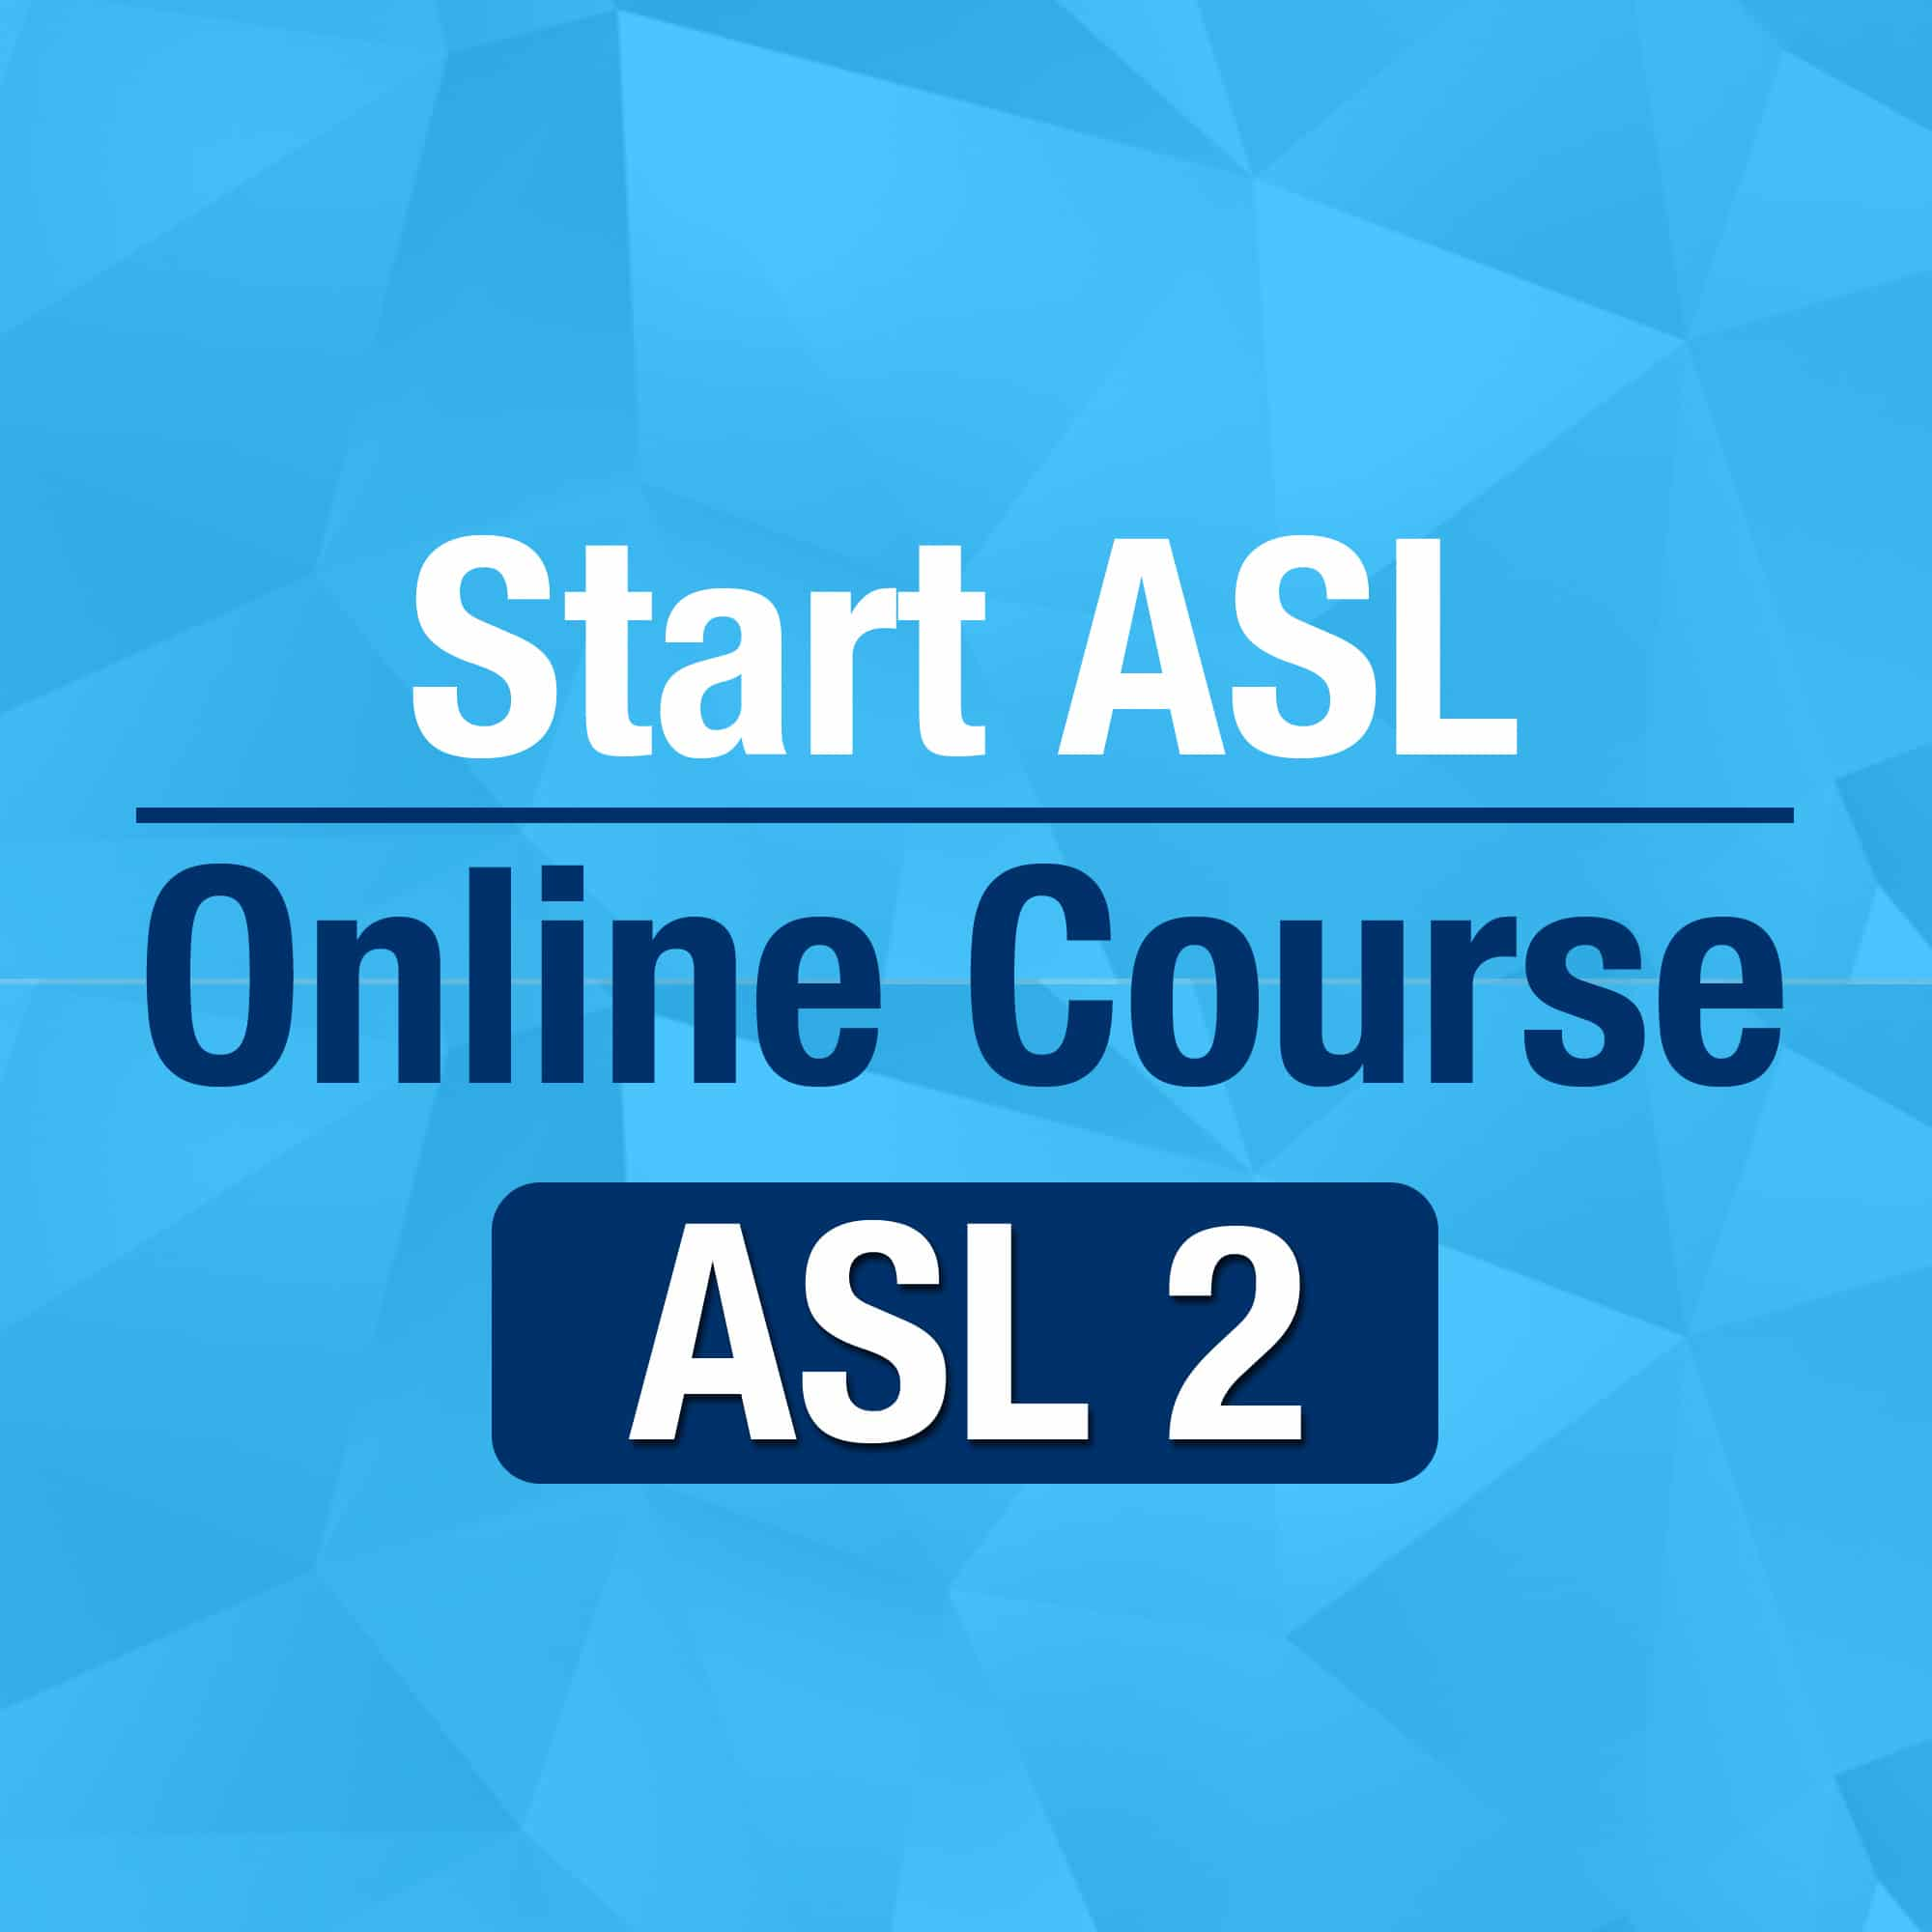 Start ASL 2 Online Course